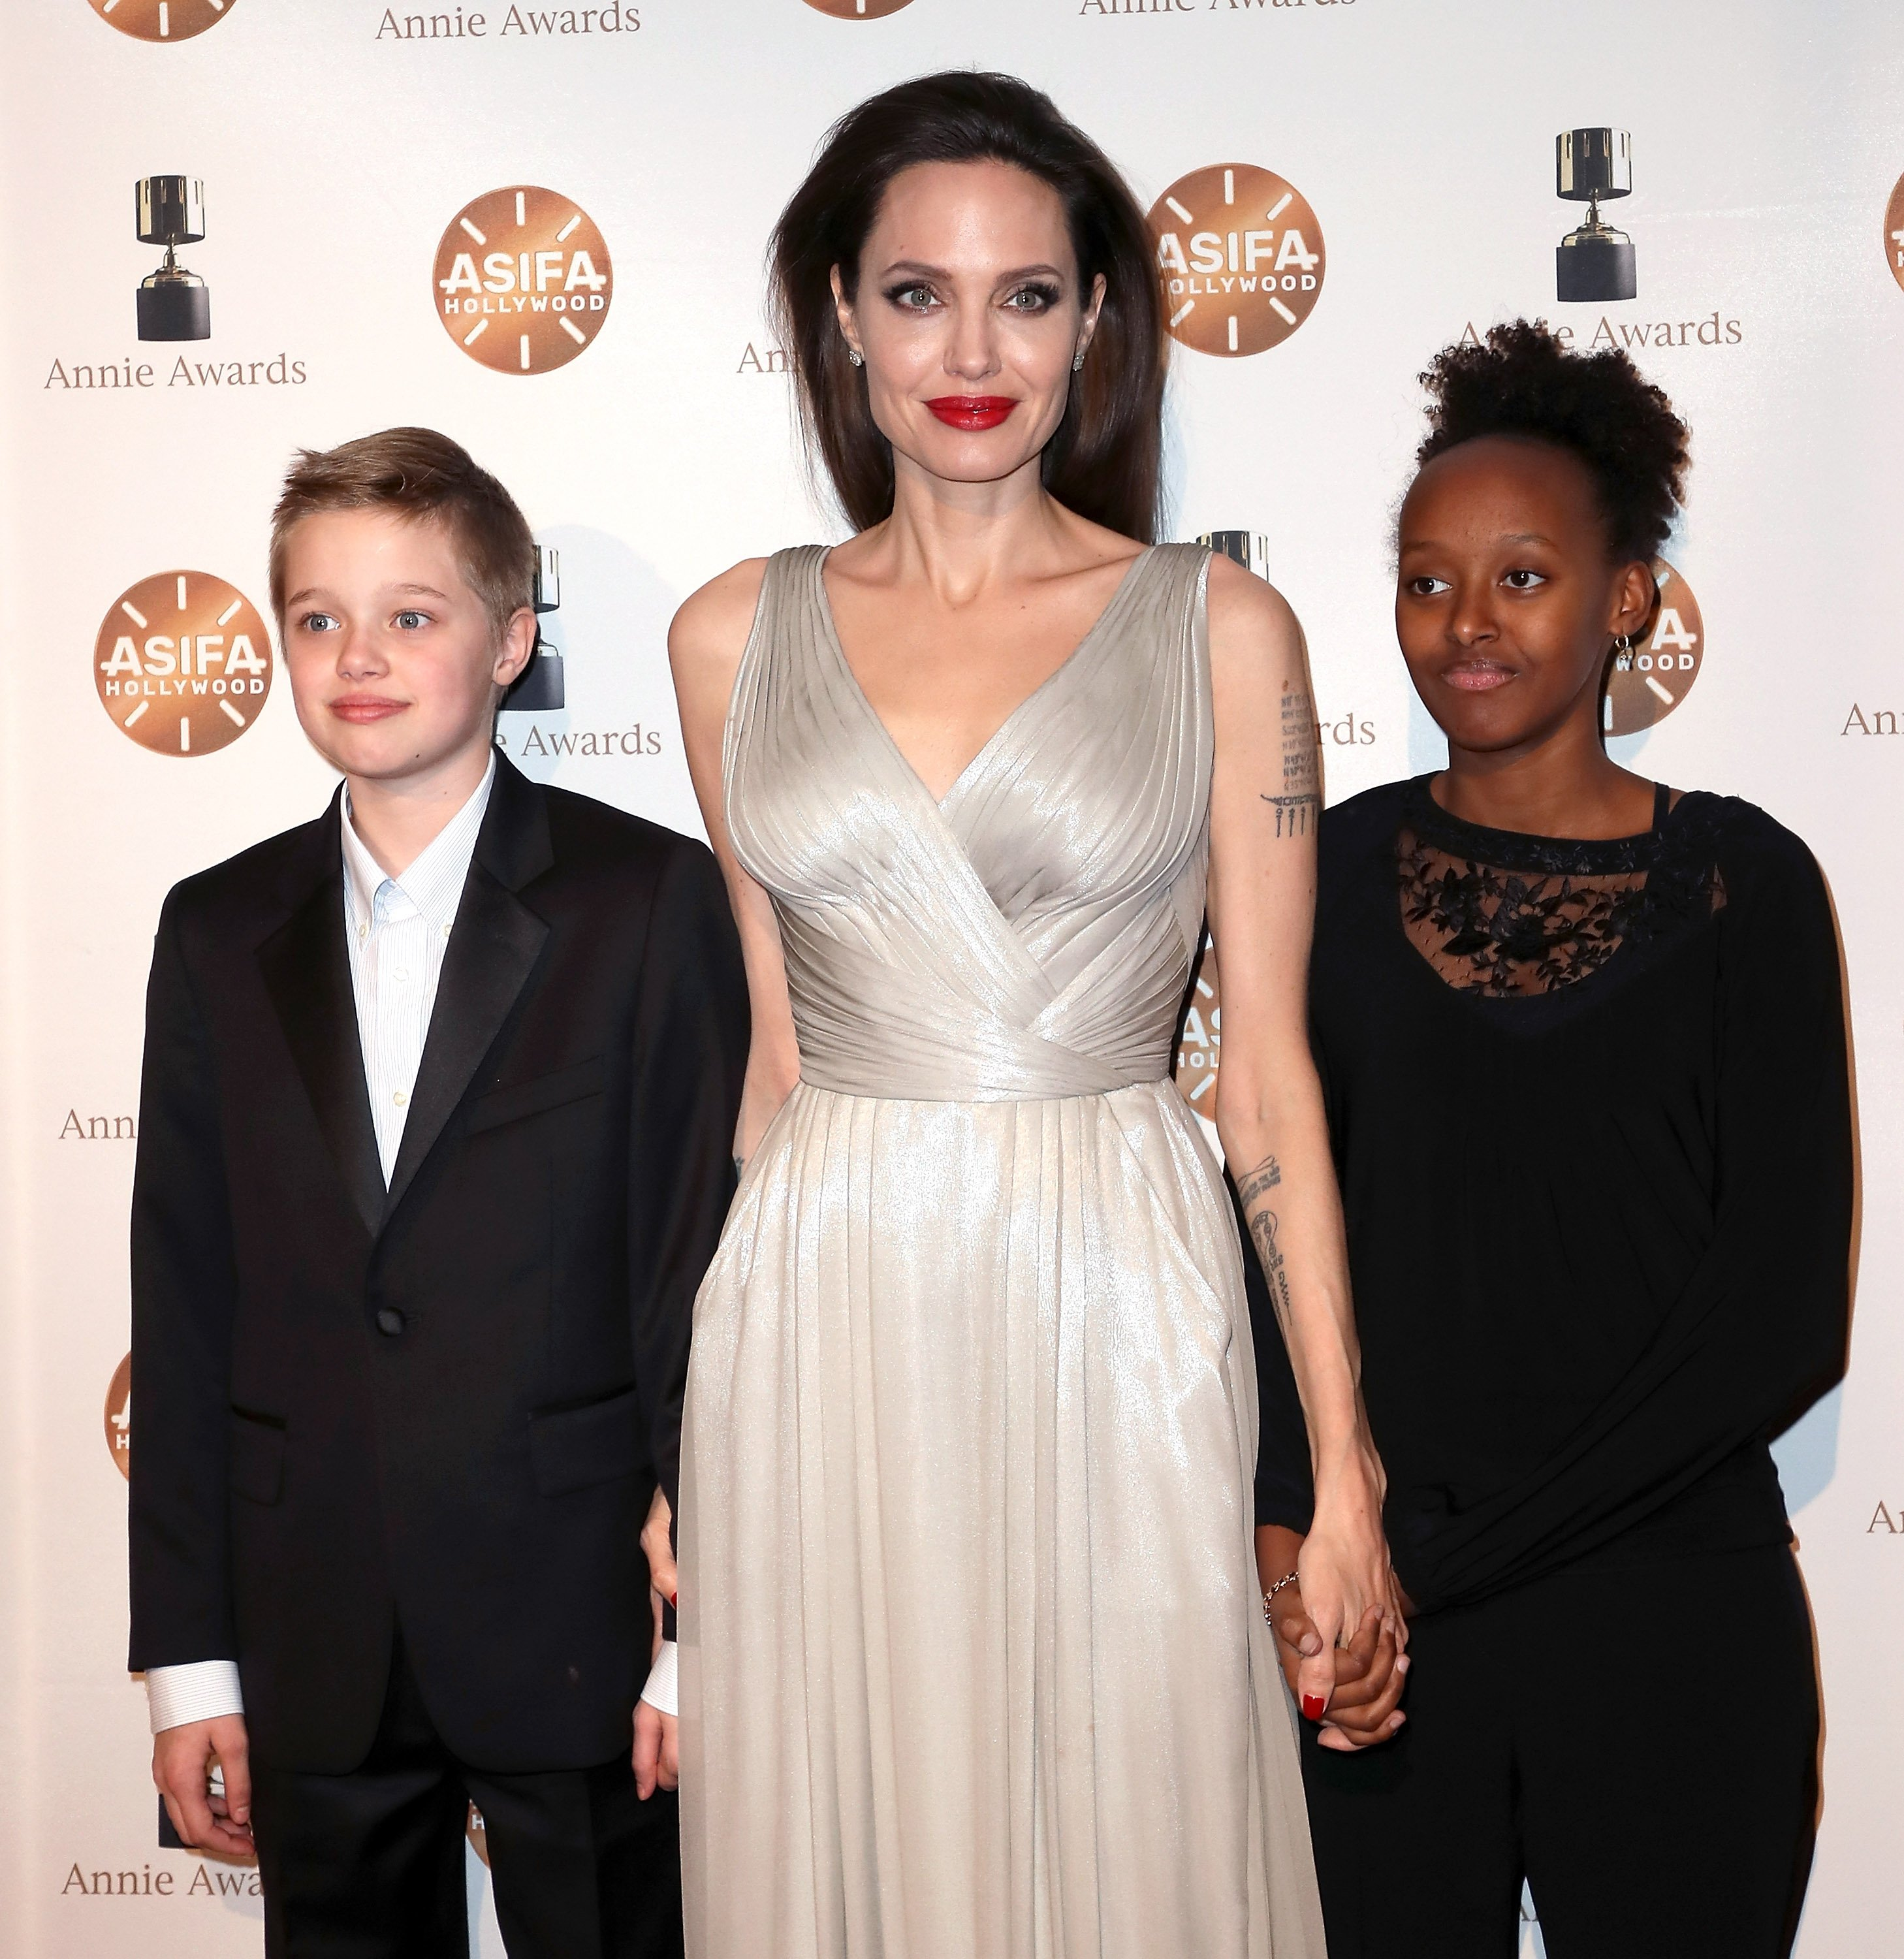 Image Source: Getty Images/Angelina with her children at the Annie Awards